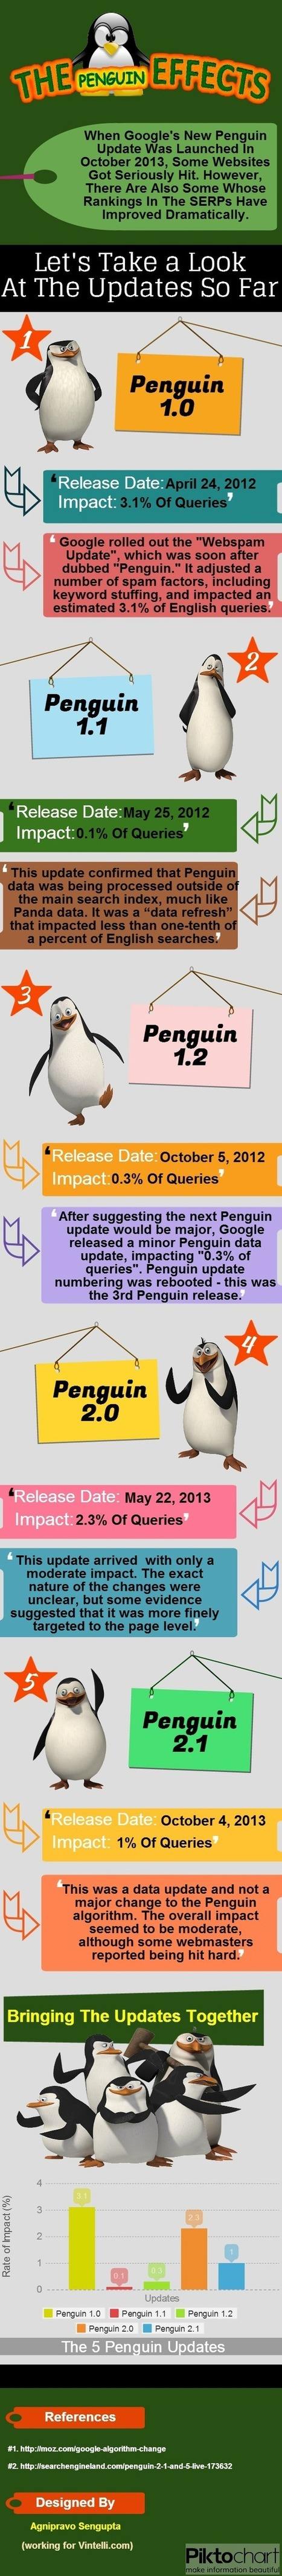 Google Penguin: Its Impact On Search Results & Internet Marketing [& Panguin Tool] | Marketing Revolution | Scoop.it